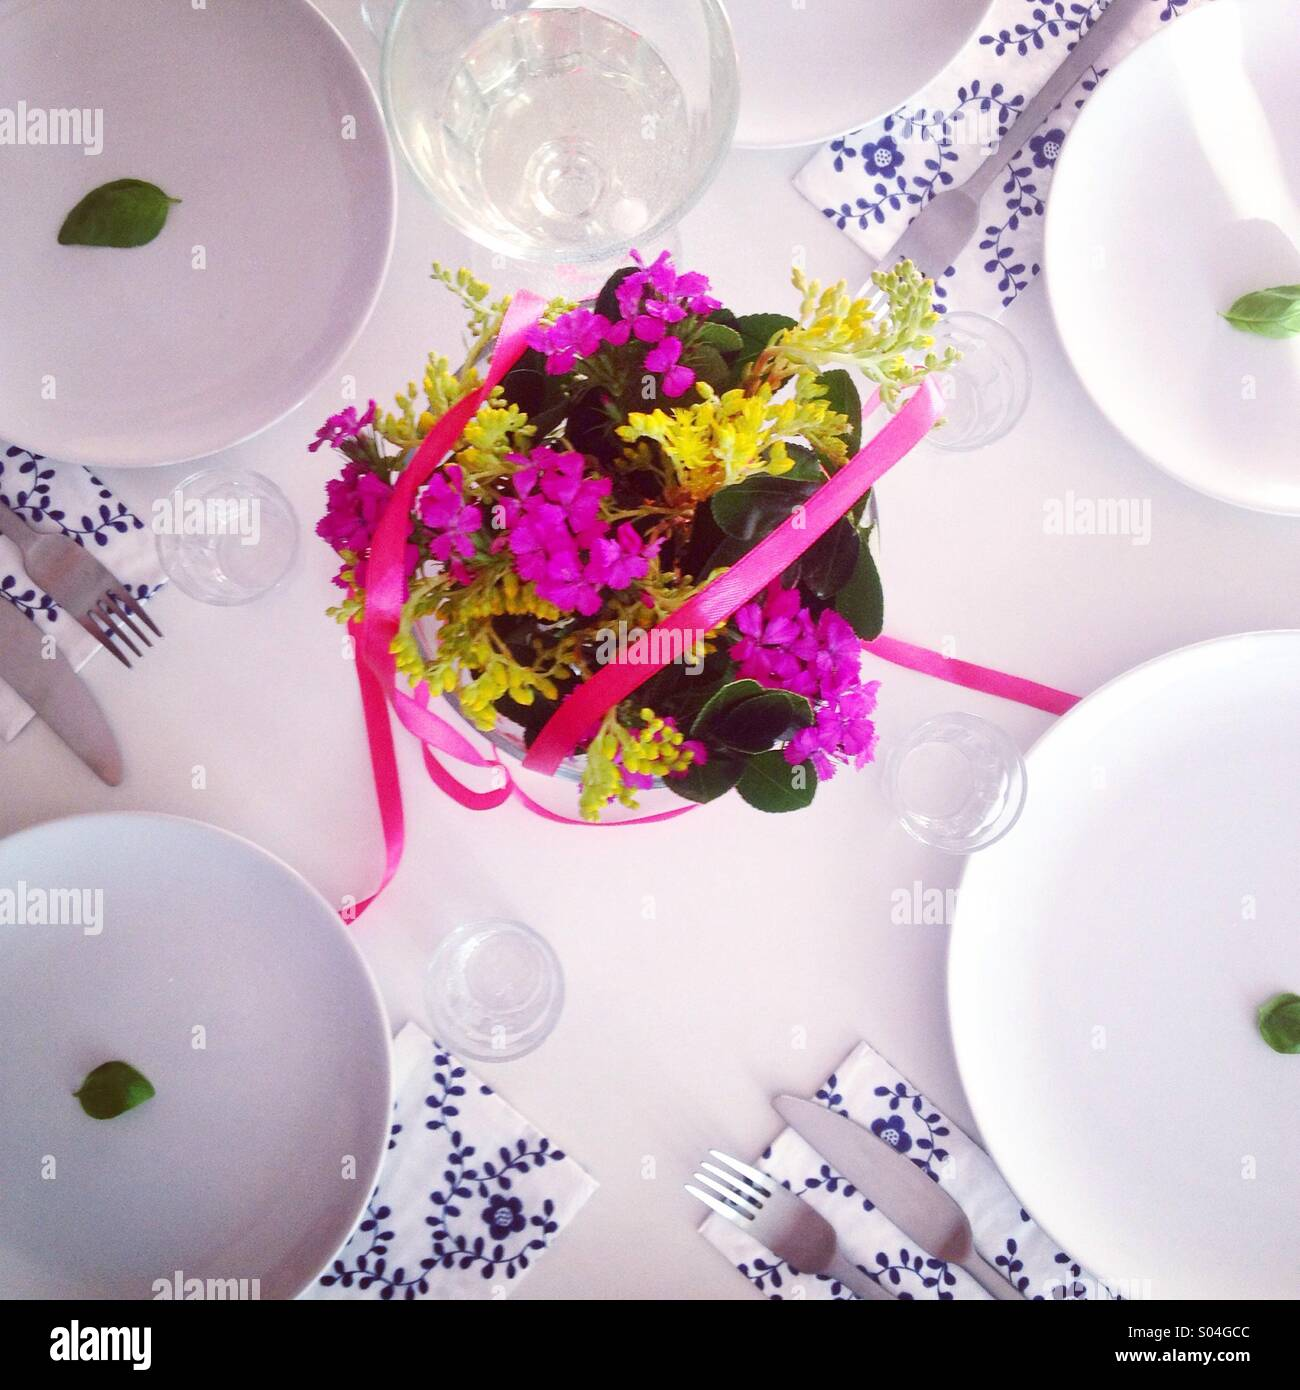 Table decoration - Stock Image